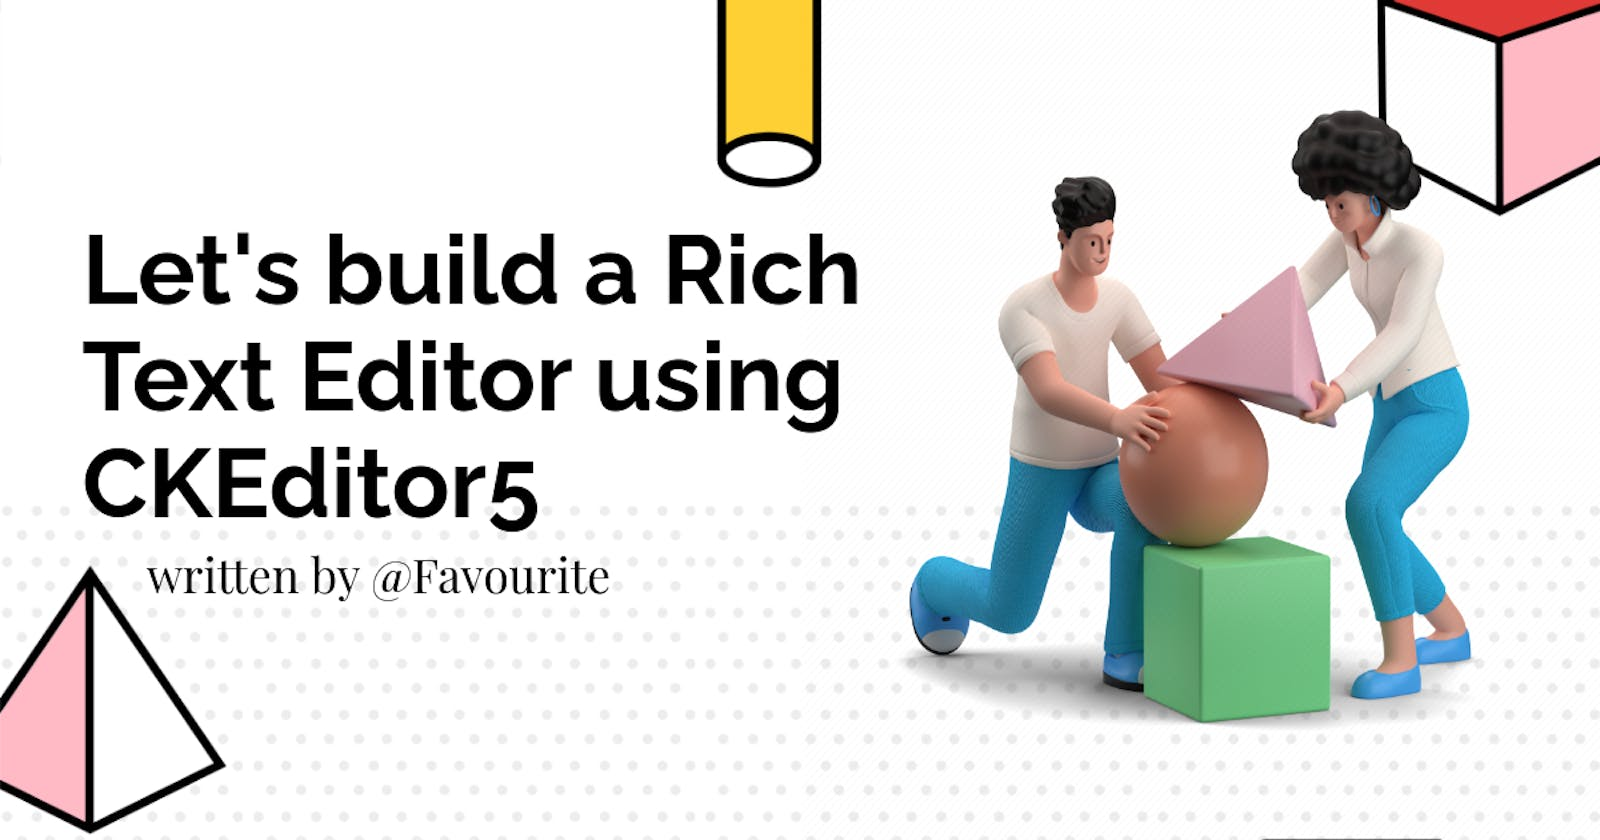 Let's build a Rich Text Editor using CKEditor5